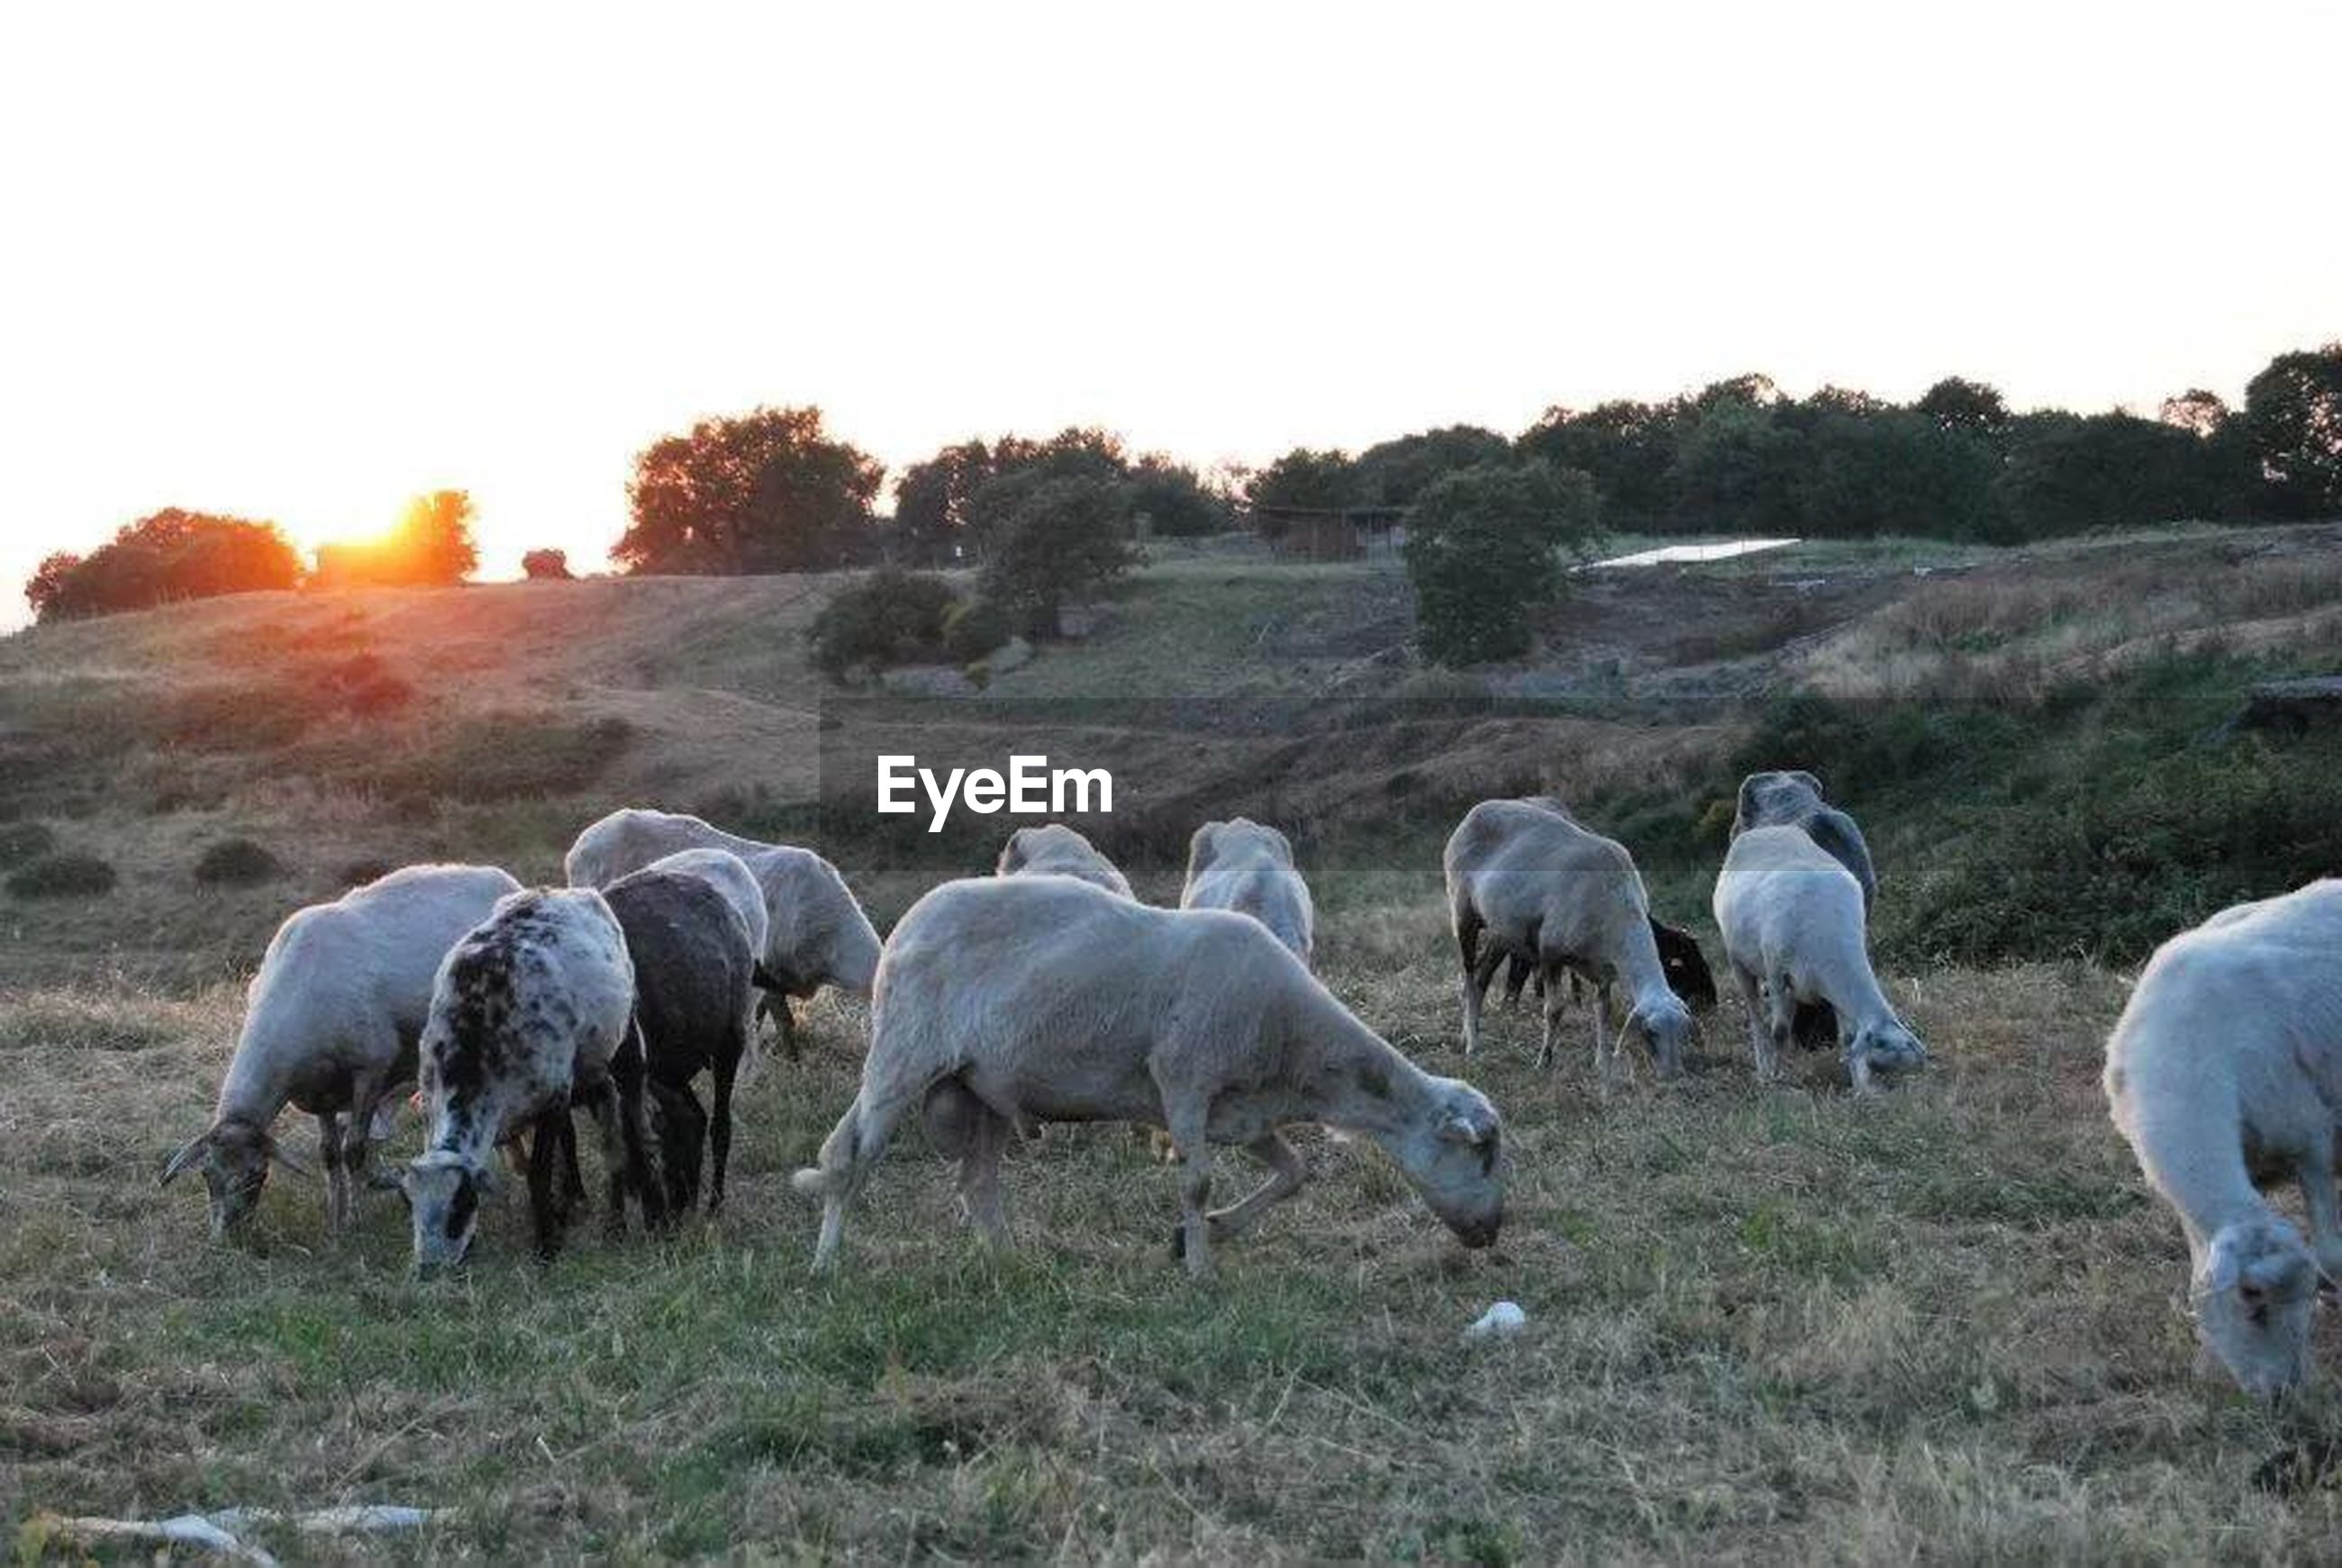 SHEEP GRAZING ON GRASSY FIELD DURING SUNSET